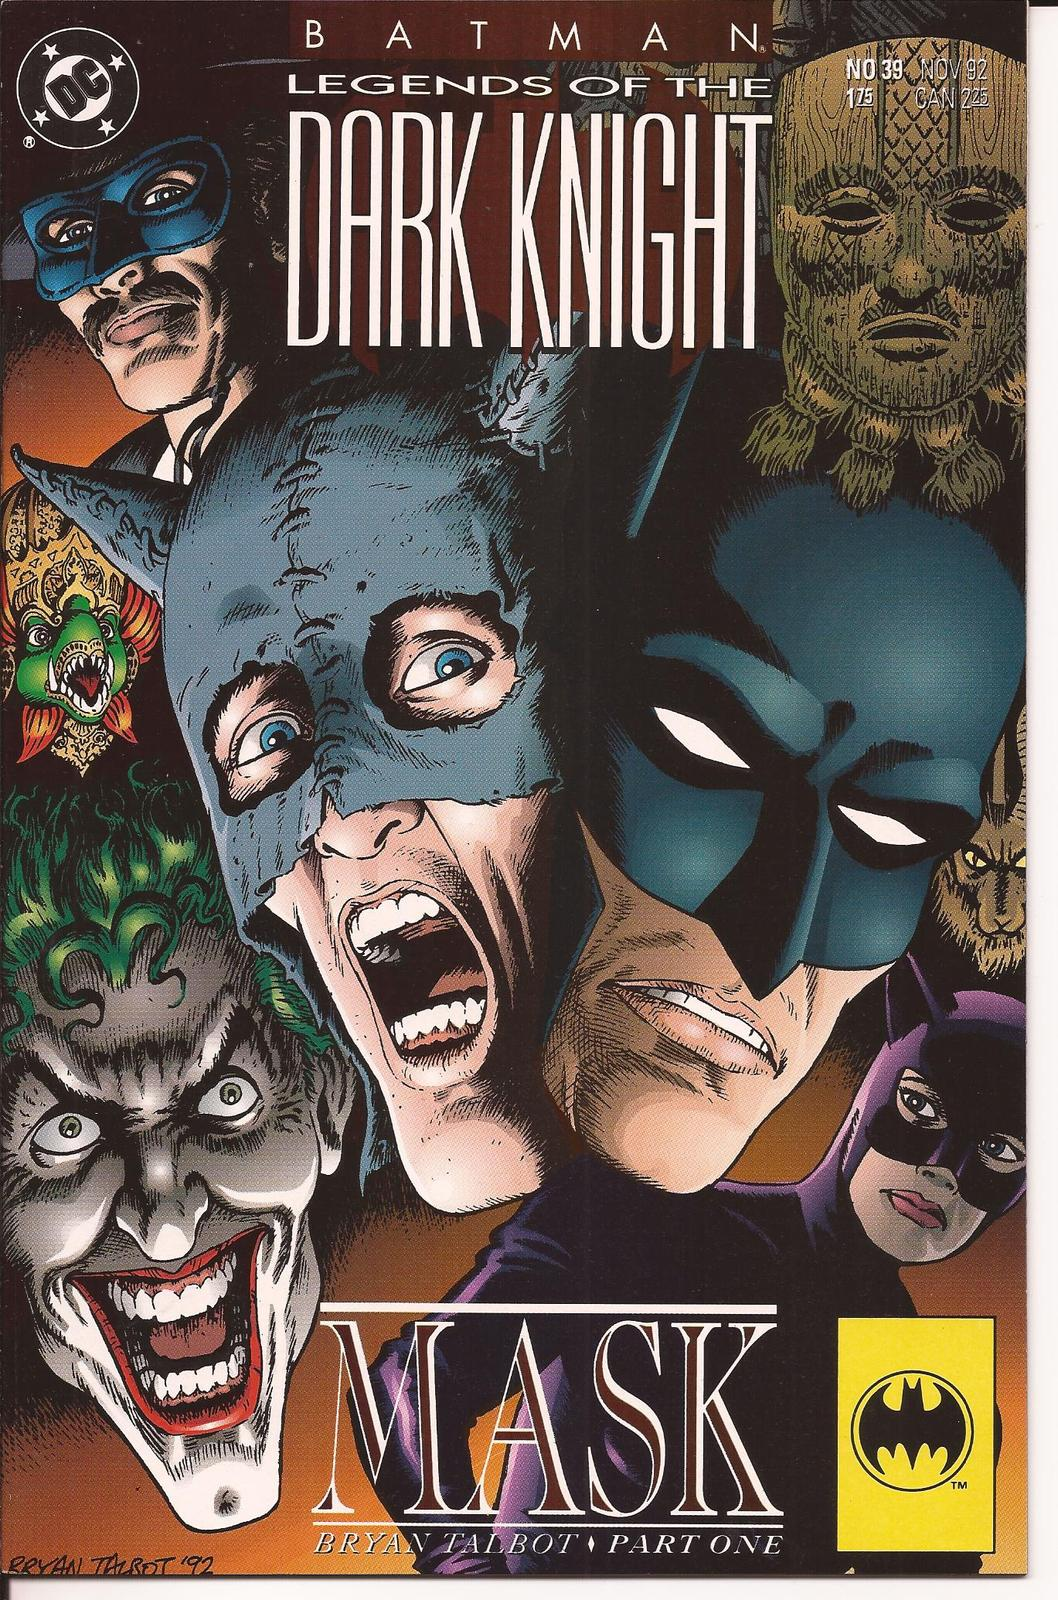 Primary image for DC Batman Legends Of The Dark Knight #39-40 Mask Storyline The Joker Bruce Wayne